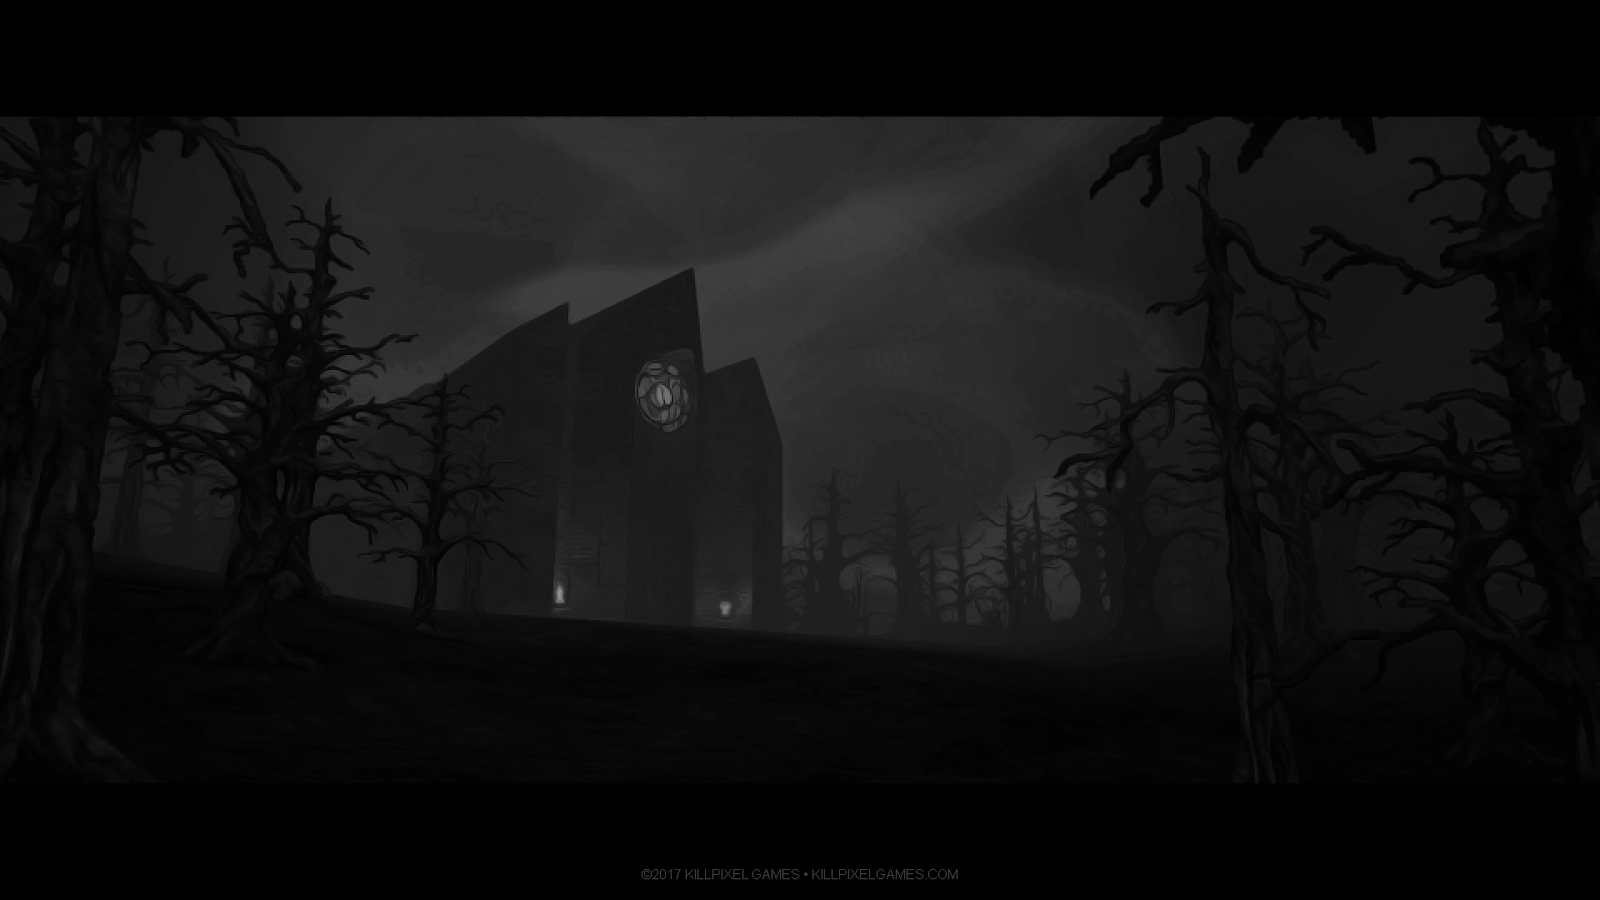 The Priory's chapel is one of the oldest concepts from WRATH. It is almost identical in the final game.